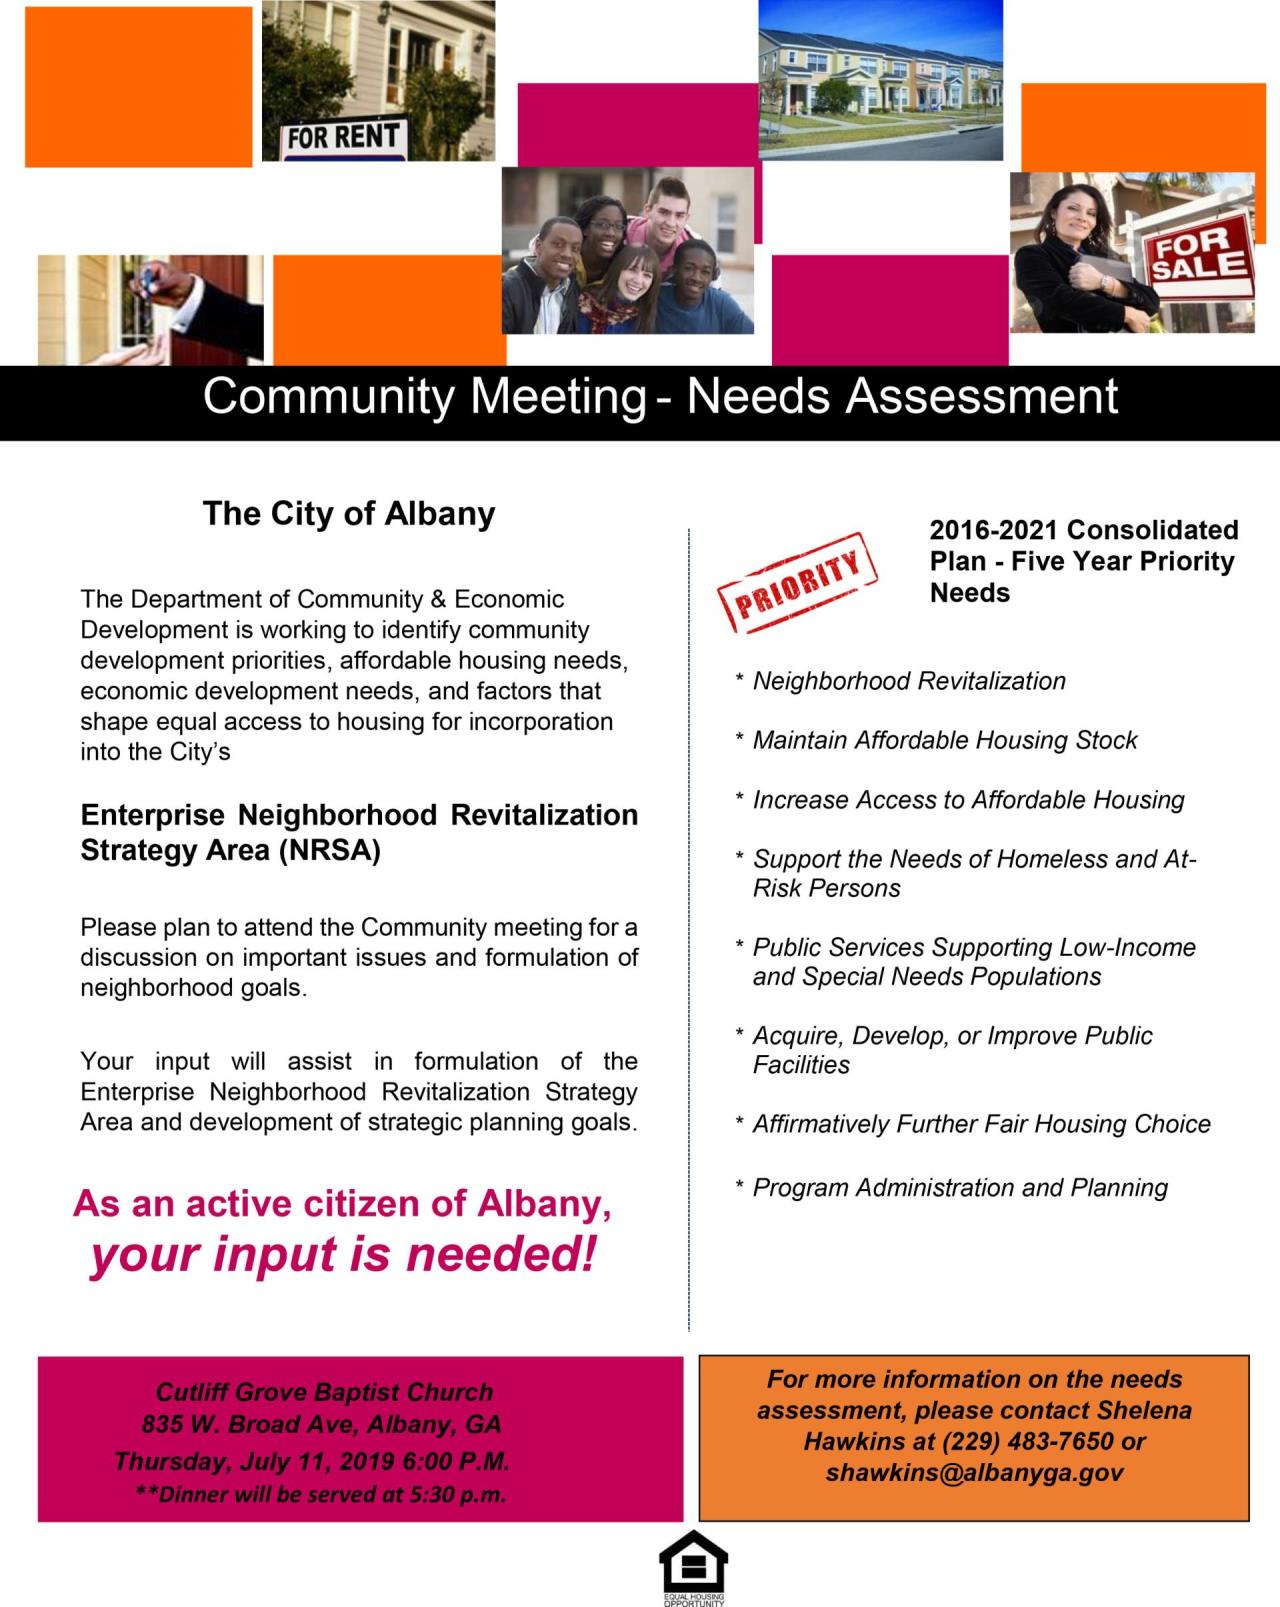 Flyer for 2019 Enterprise NRSA Community Needs Assessment Meeting - Cutliff Grove